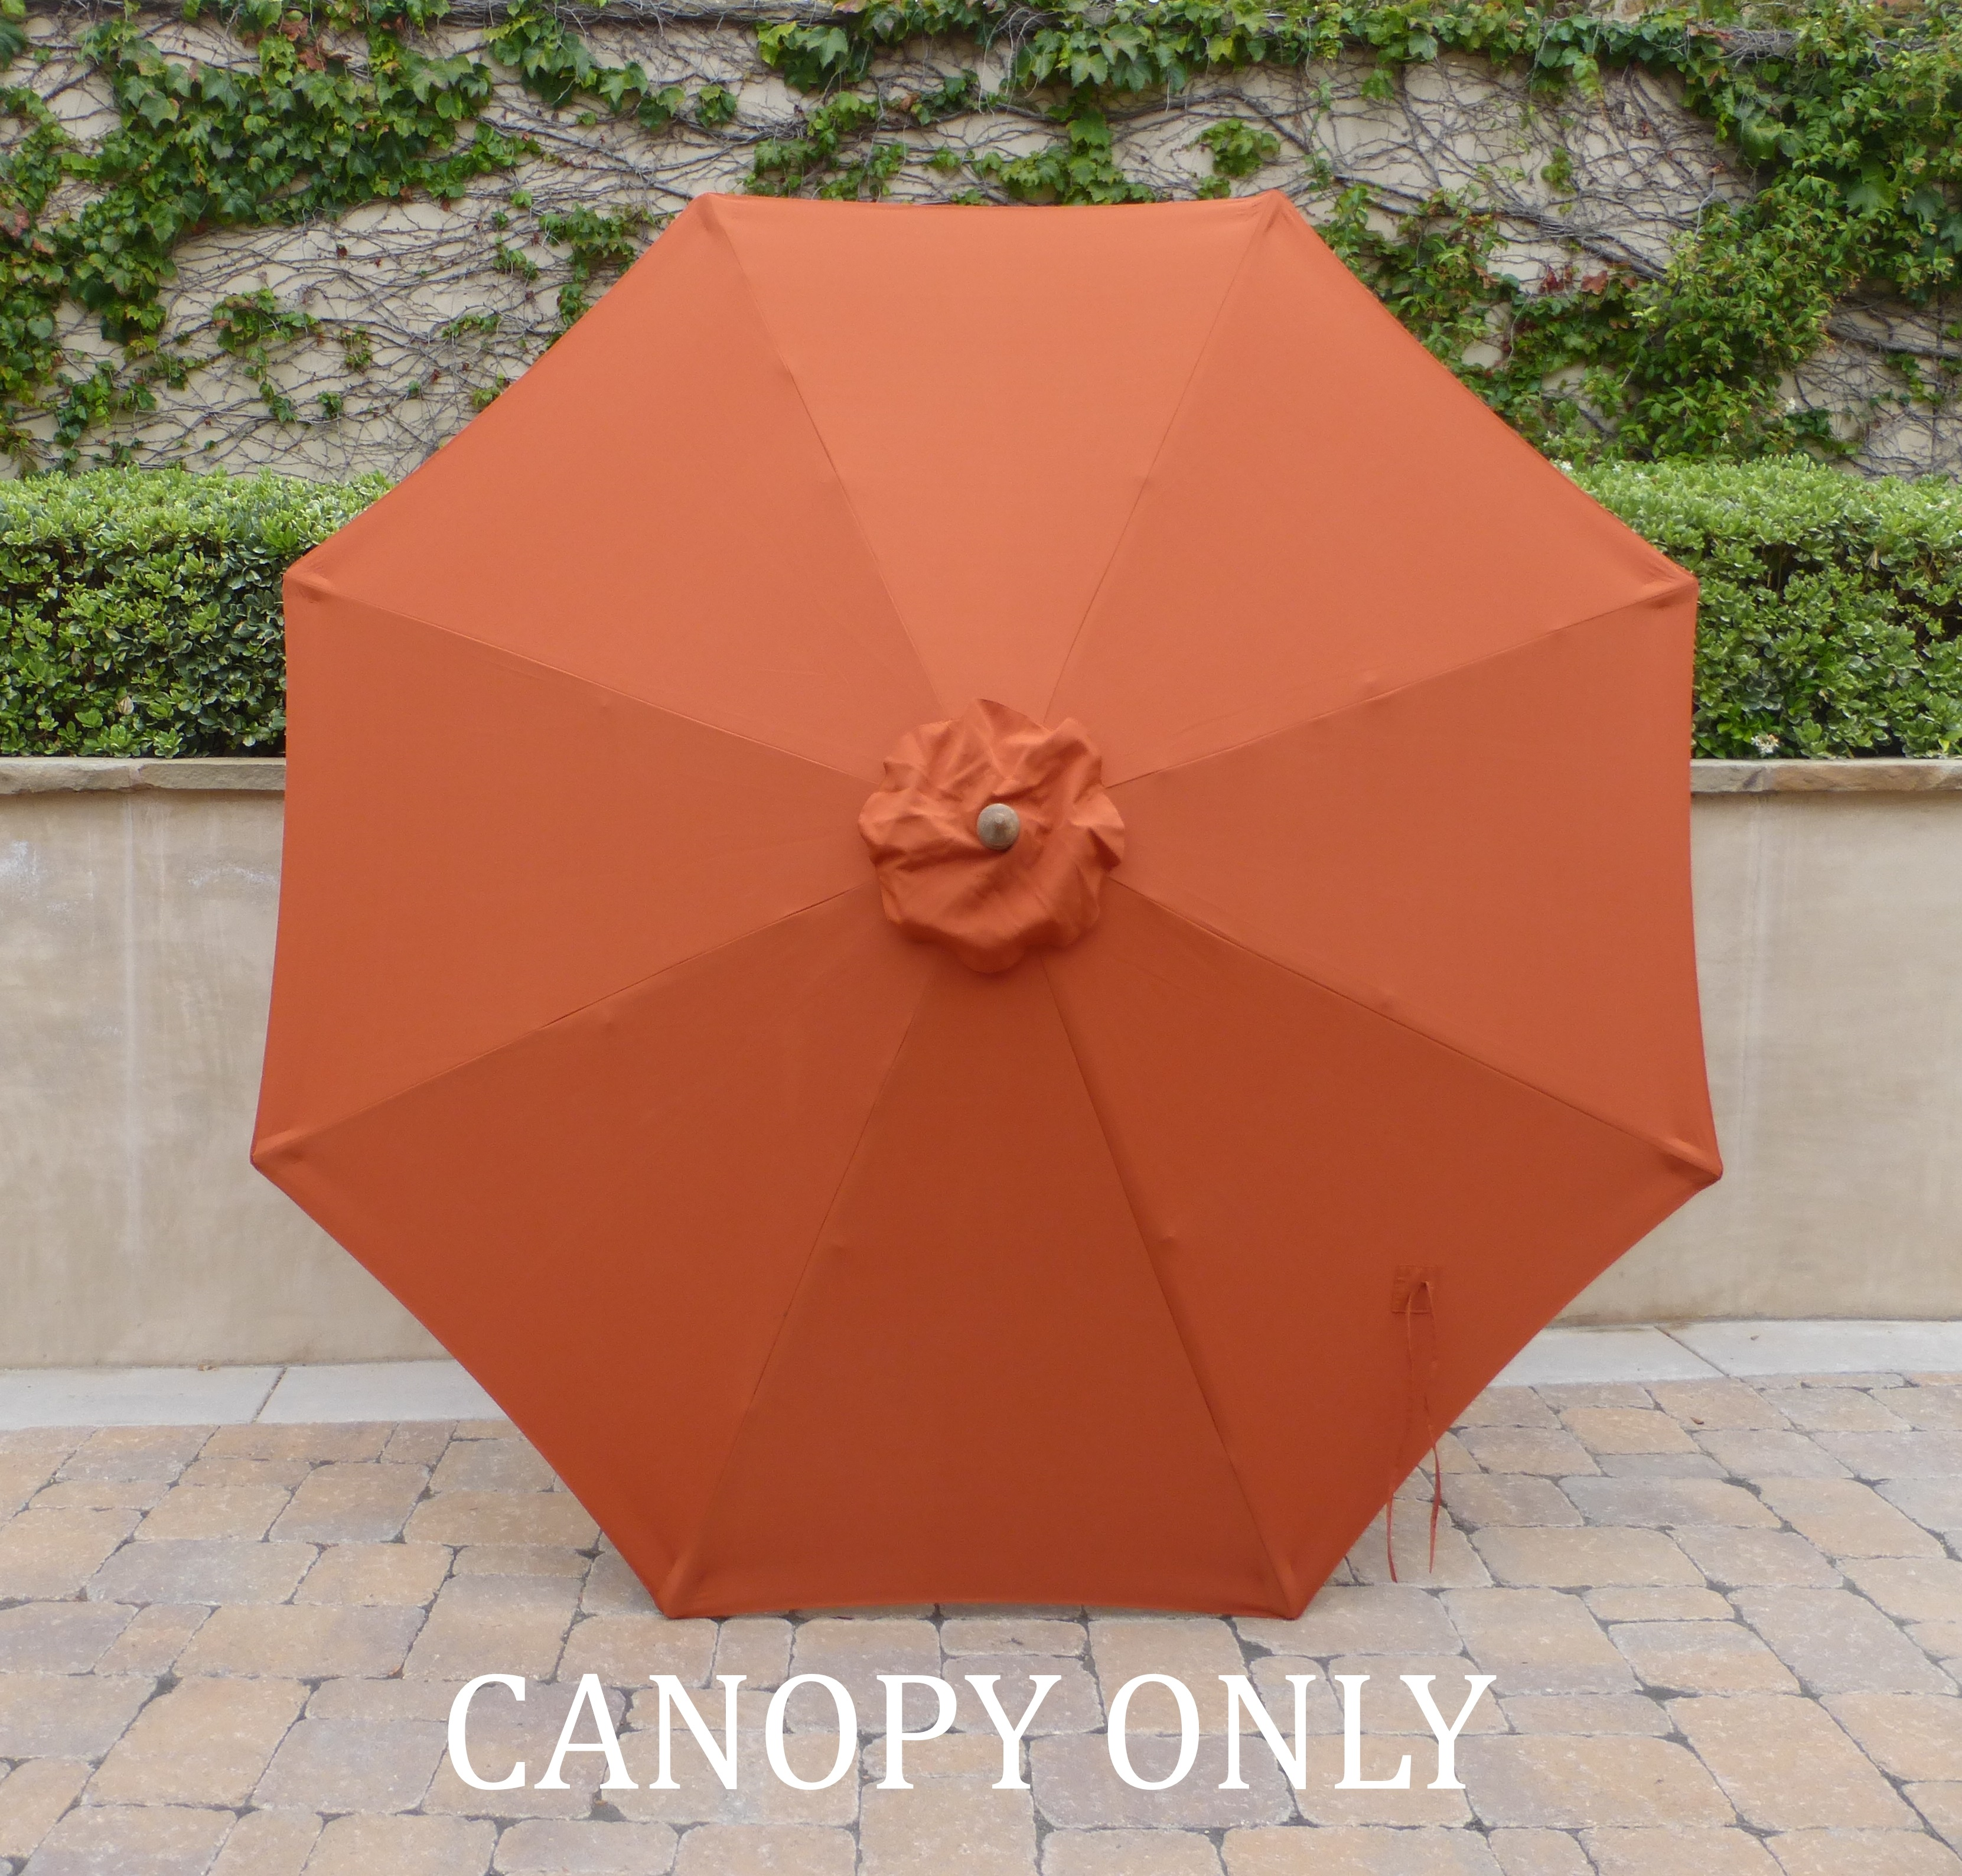 Formosa Covers 10ft Market Patio Umbrella Replacement Cover Canopy, 8 Ribs, Terracotta Color (CANOPY ONLY)